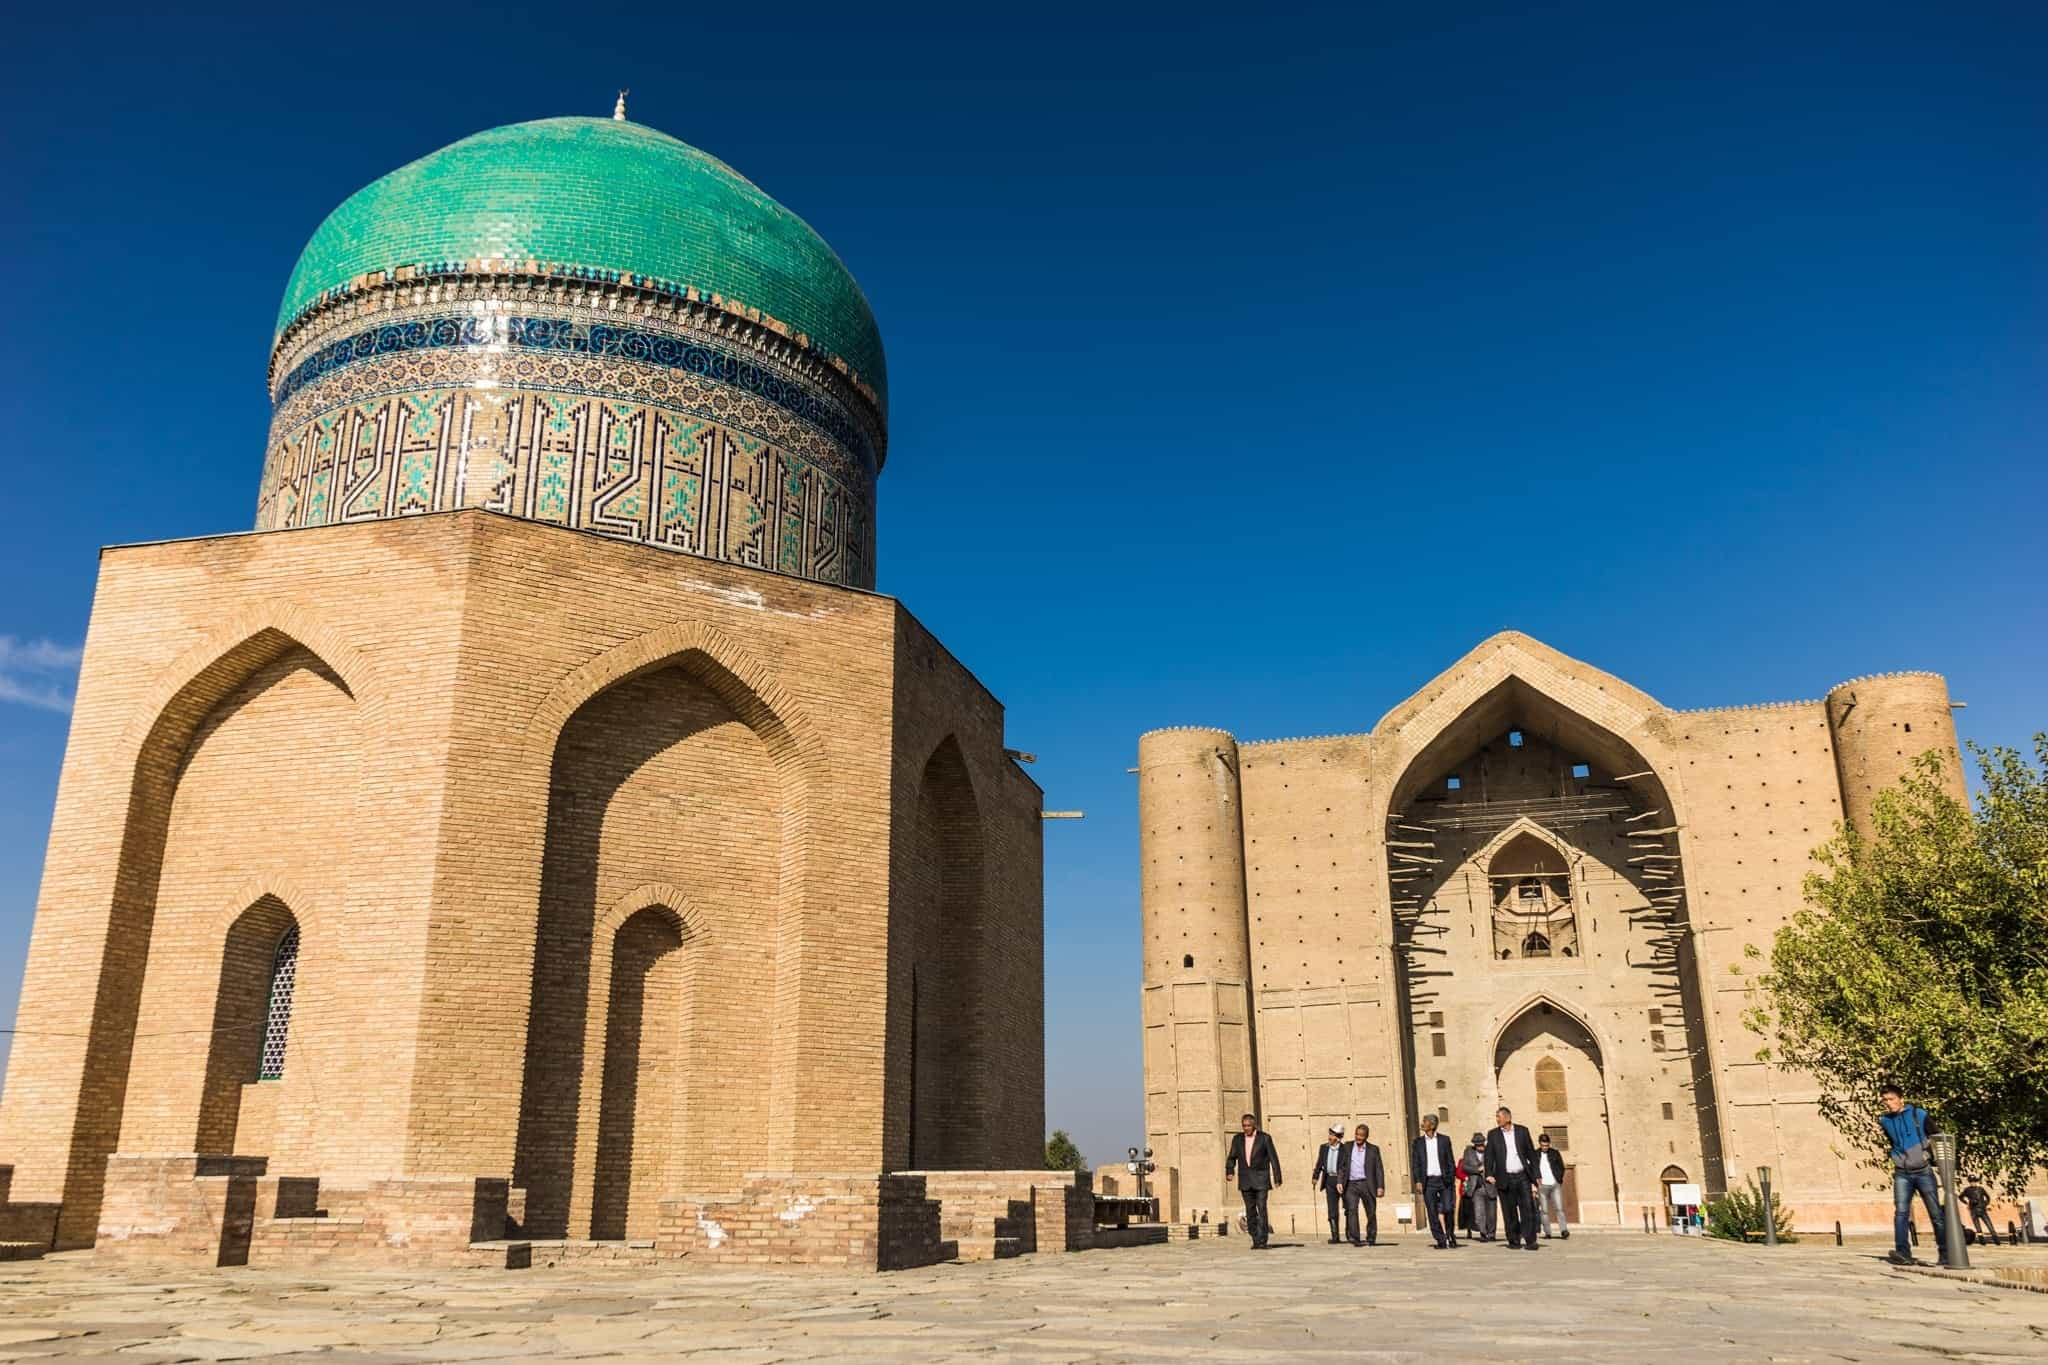 The Mausoleum Of Khawaja Ahmed Yasawi